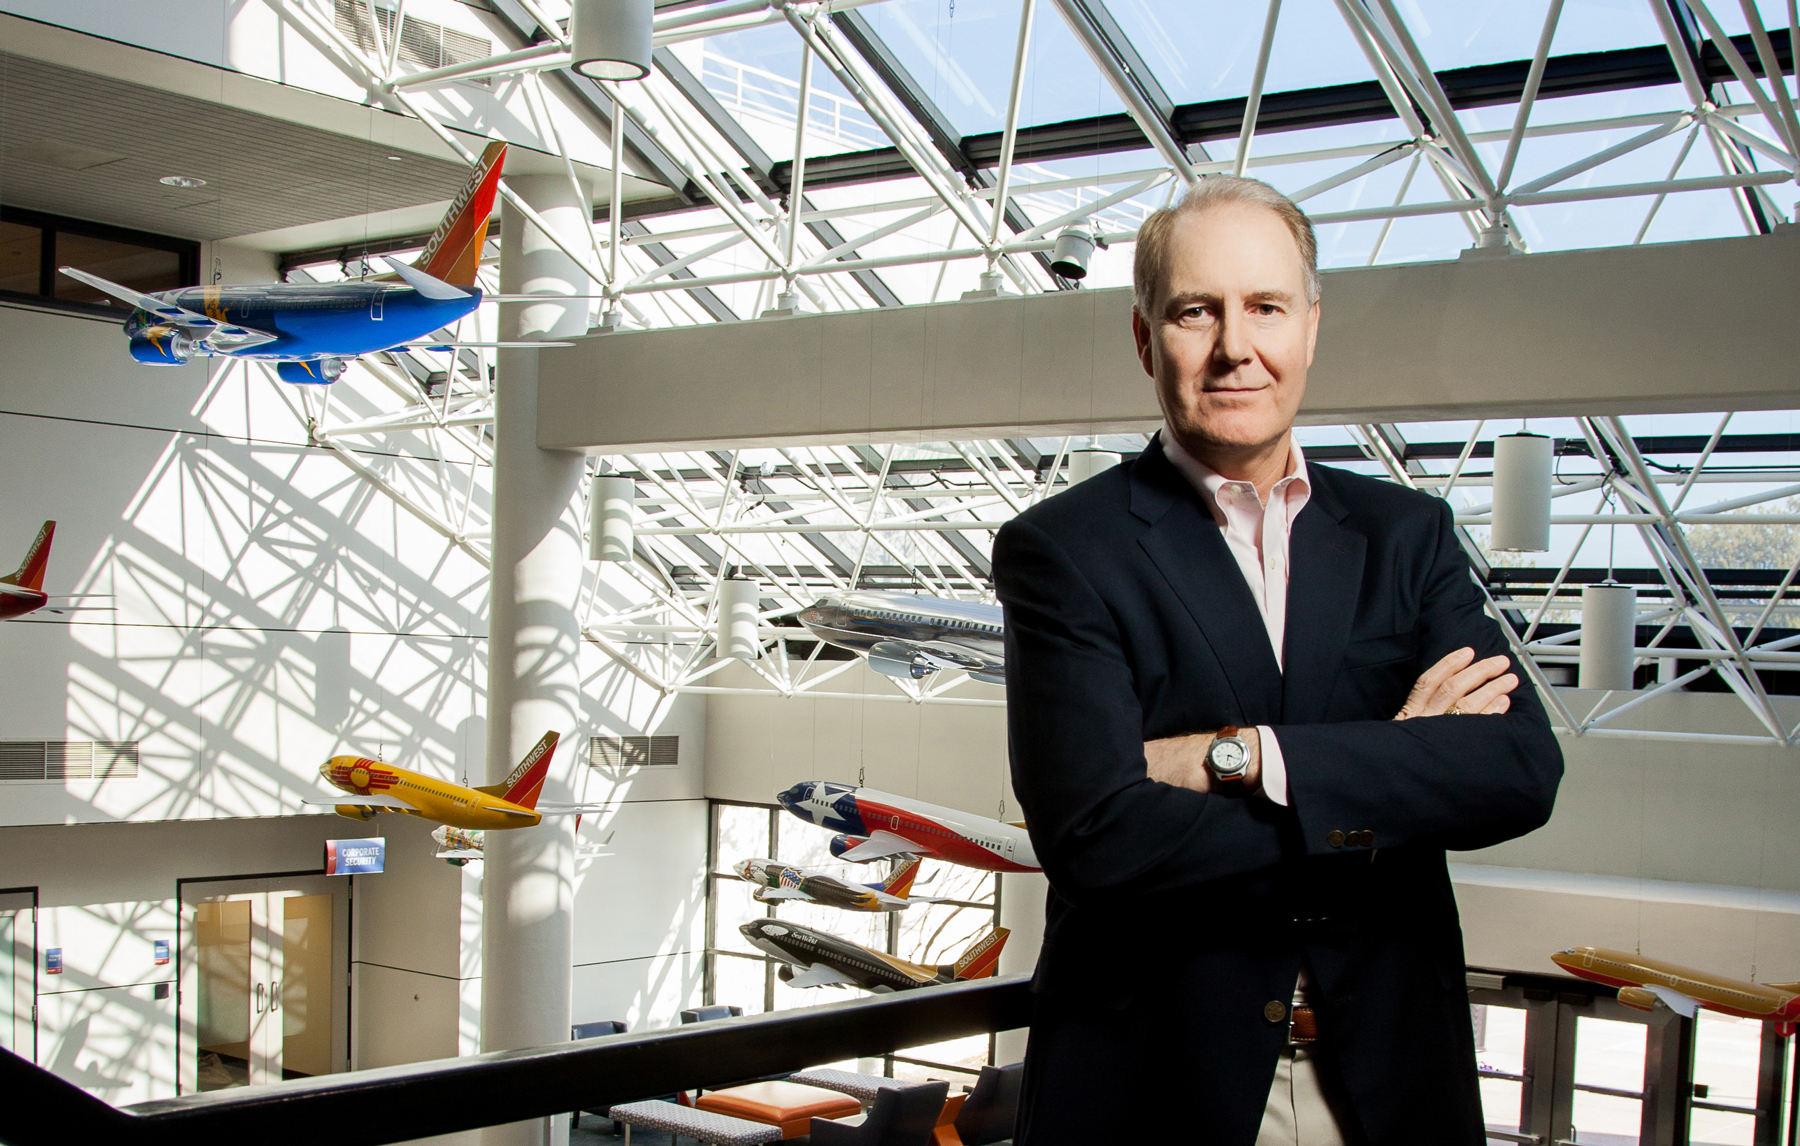 Gary Kelly, Southwest Airlines